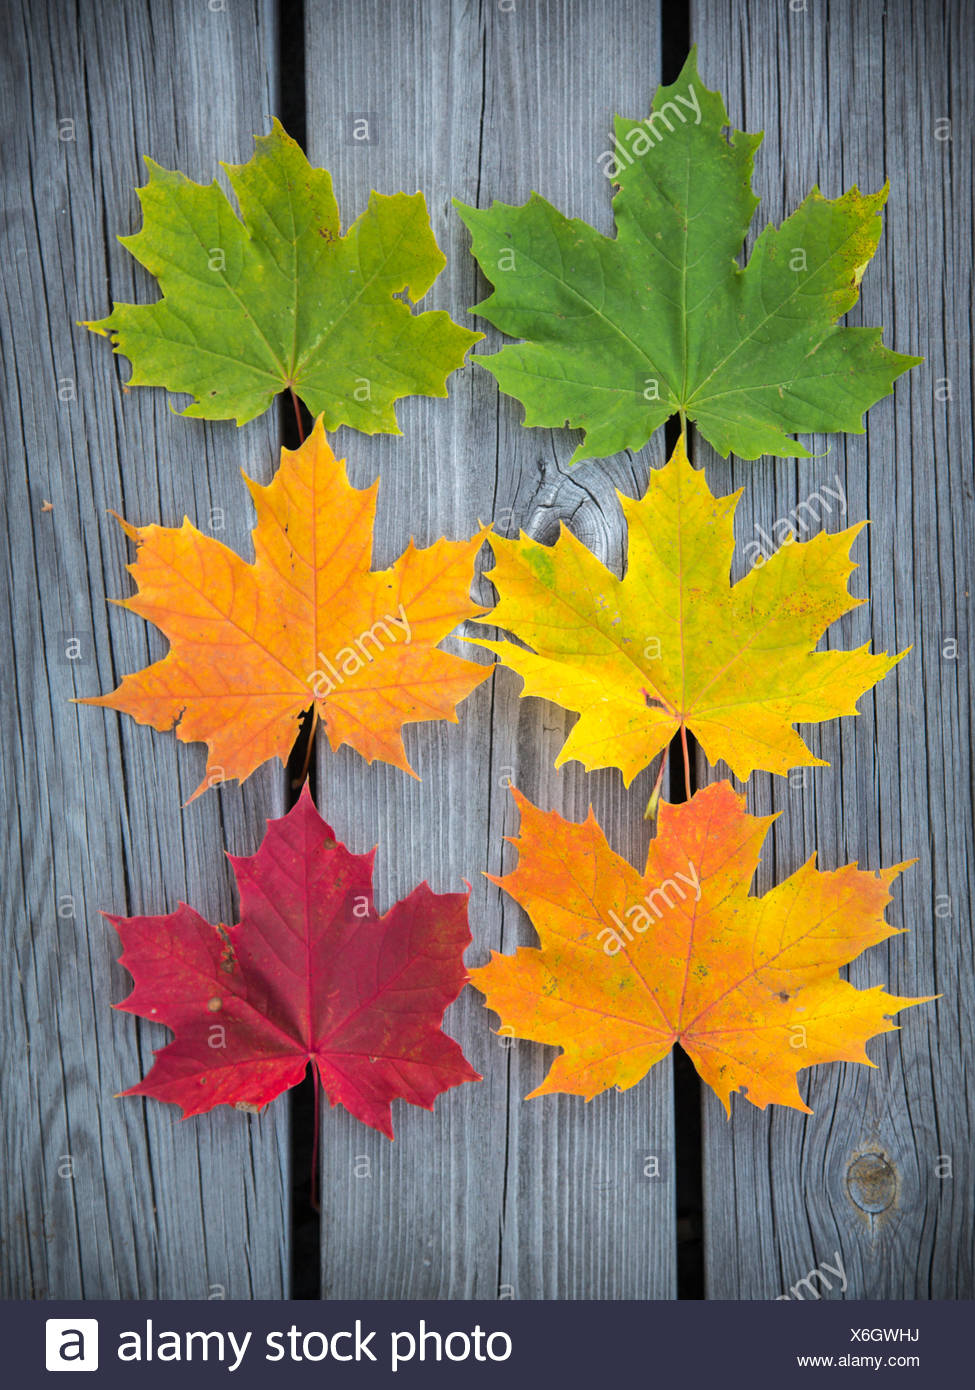 Six varicolored maple leaves arranged in rows on weathered wooden planks - Stock Image